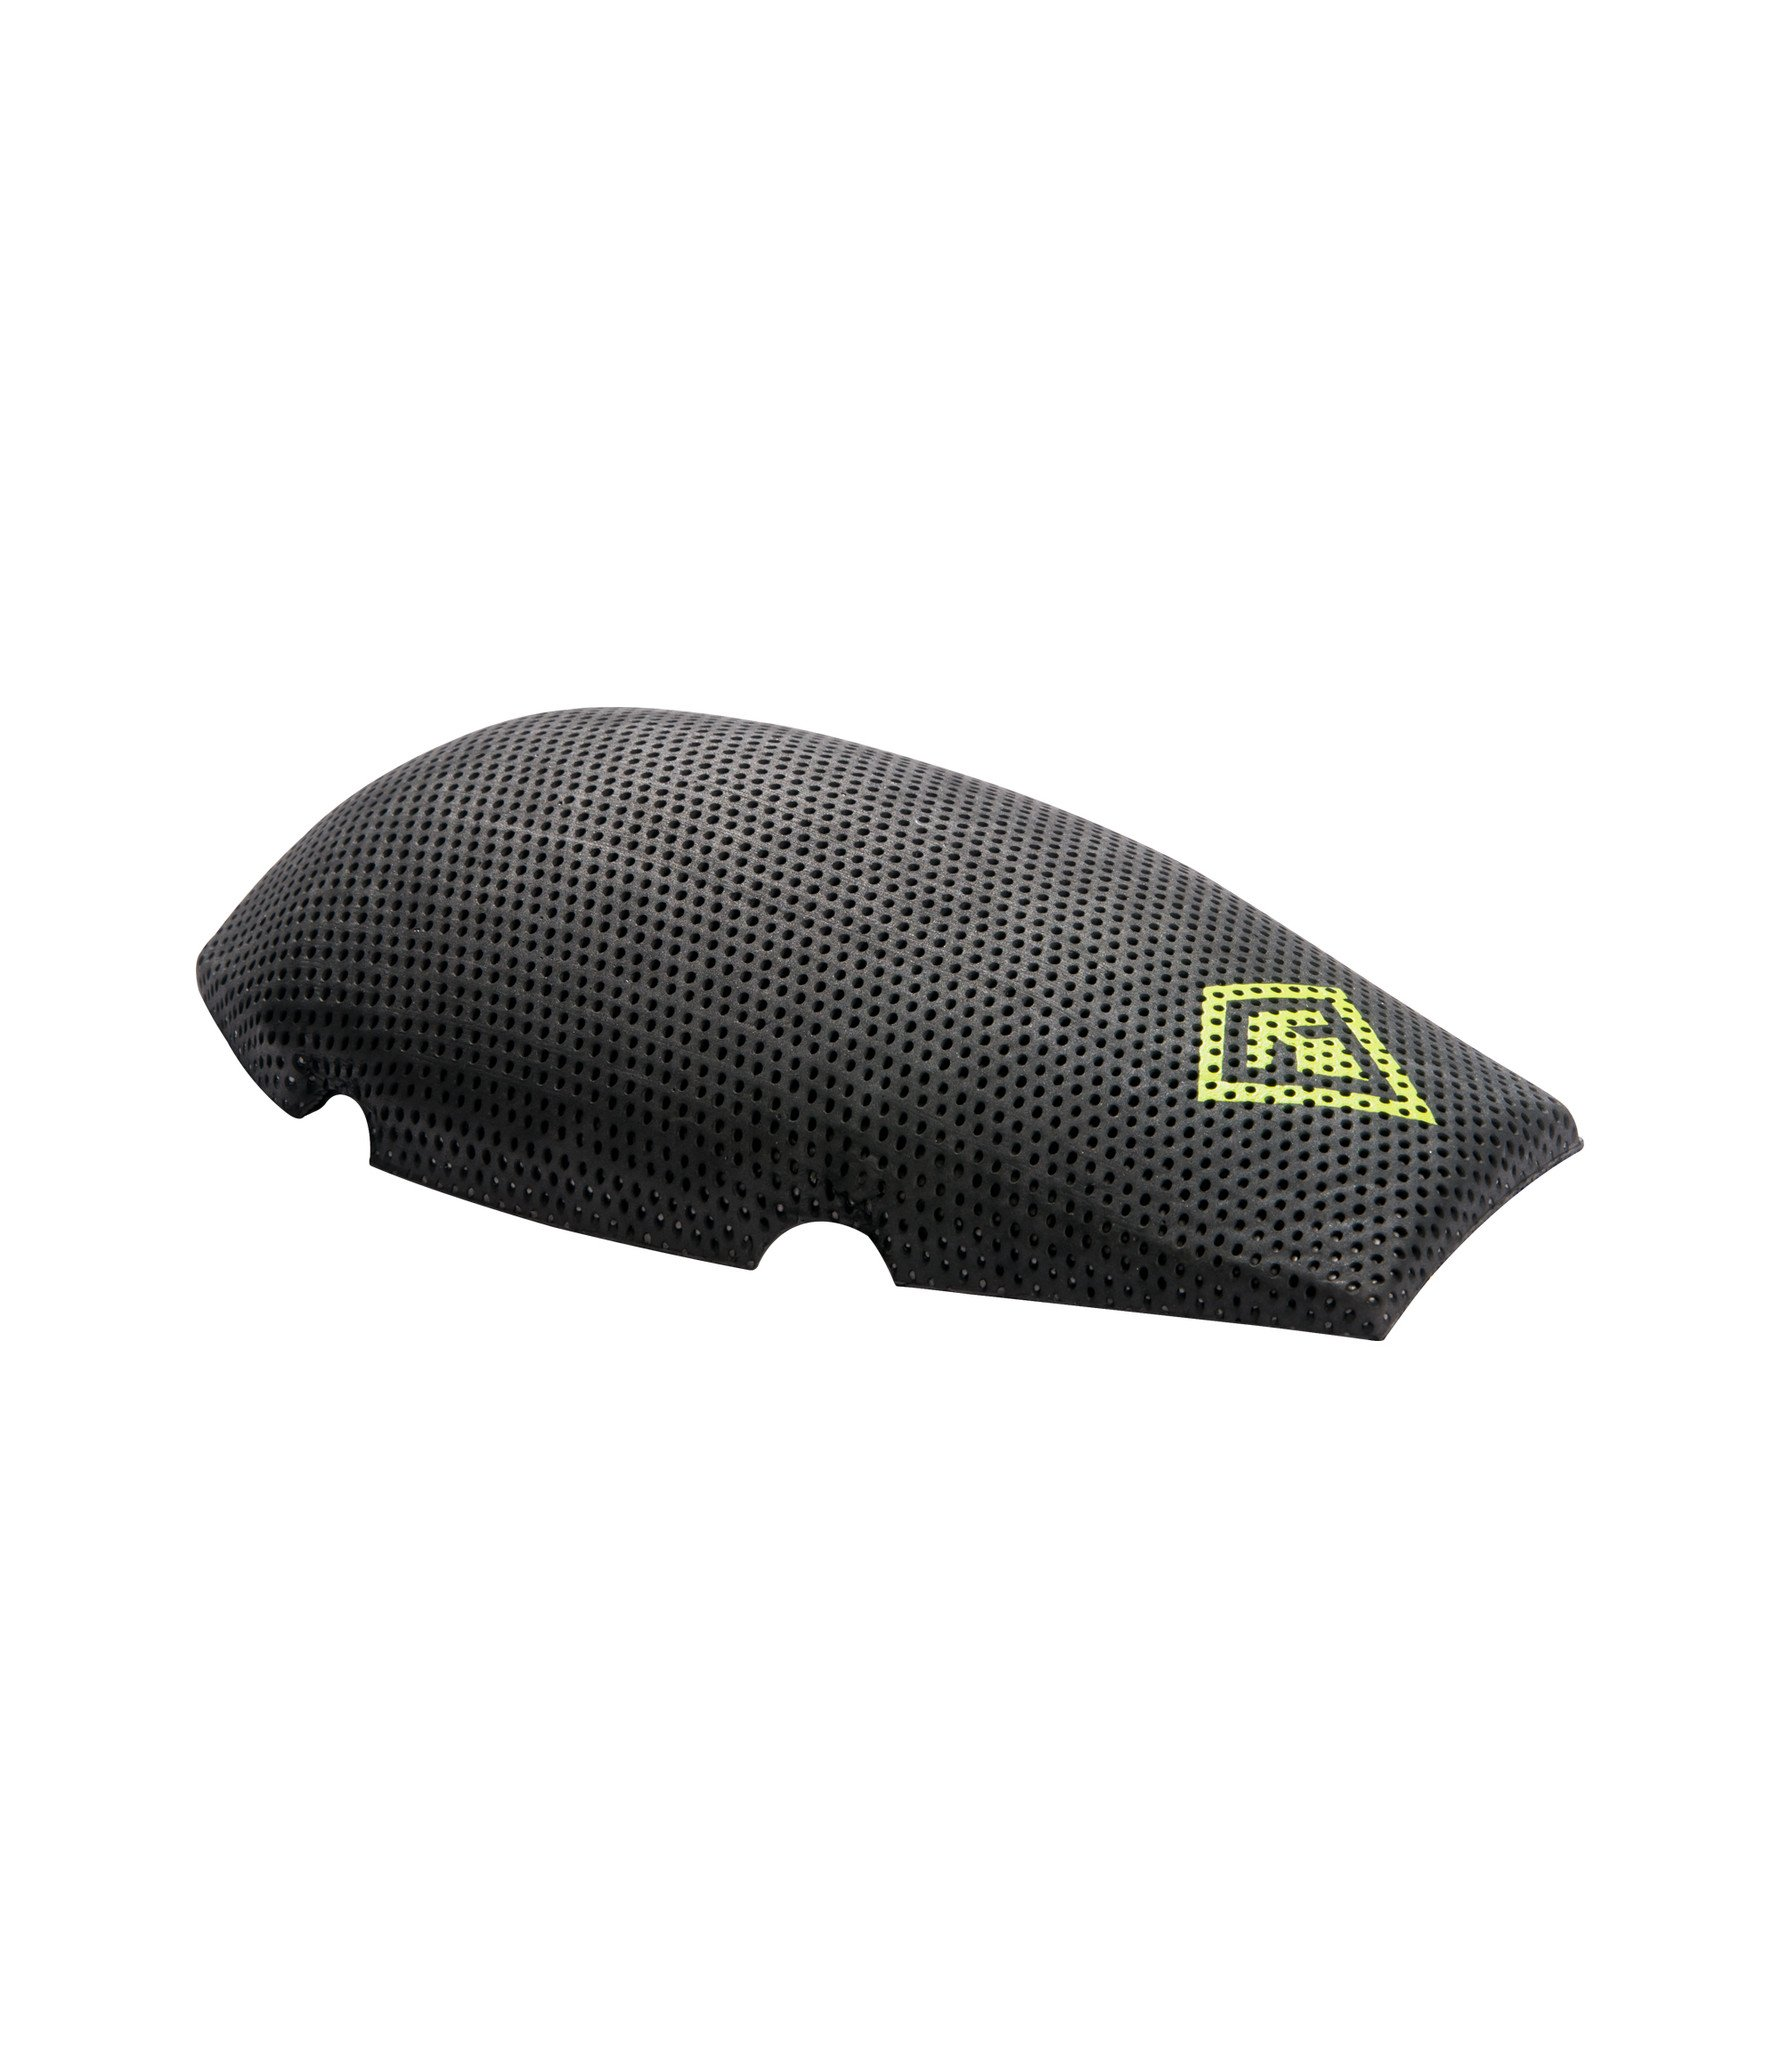 Internal Knee Pad (Black)